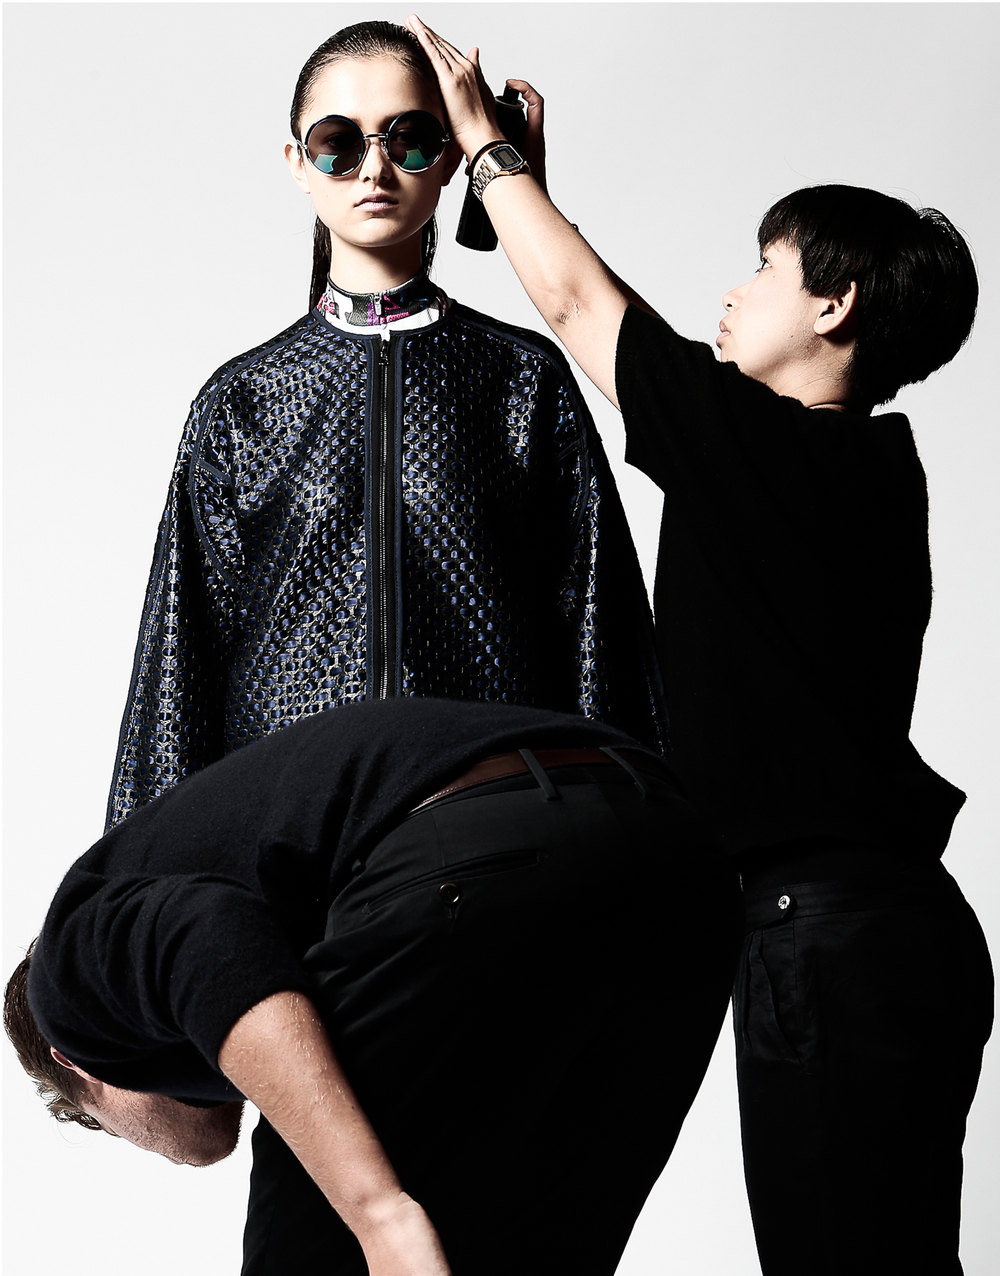 The Stylists